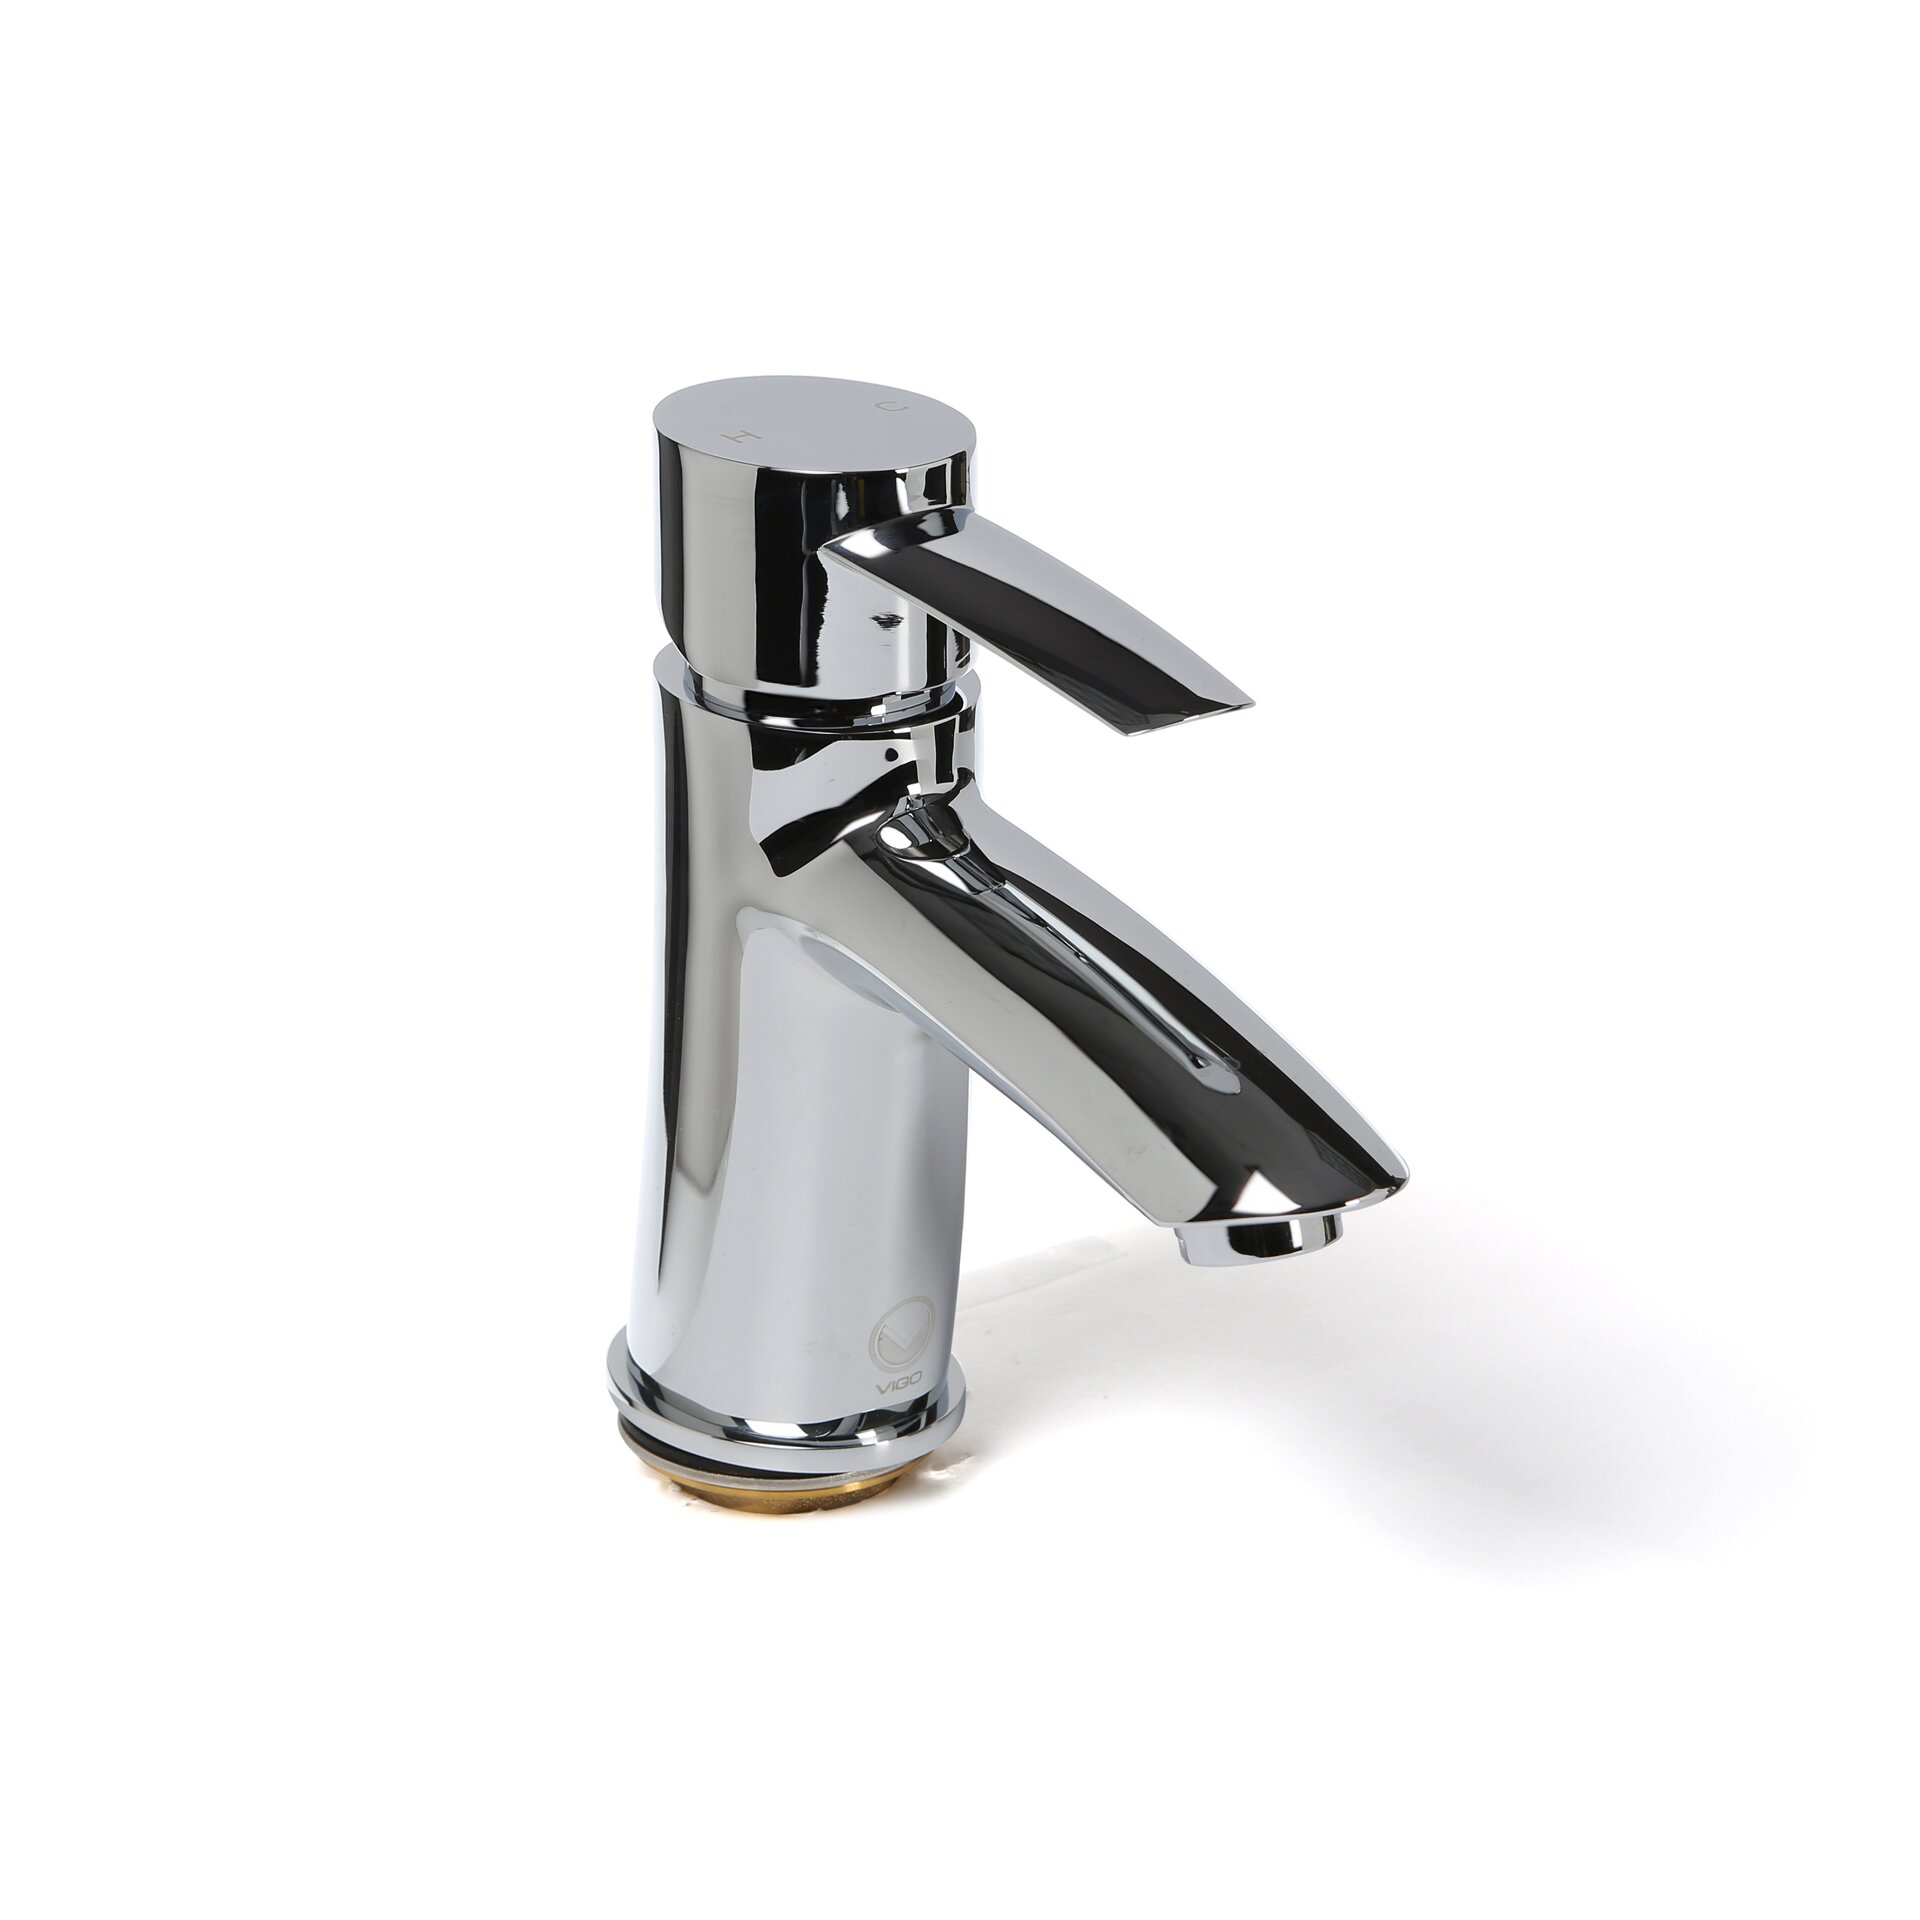 Single Lever Bathroom Faucets: Vigo Bova Single Lever Basin Bathroom Faucet & Reviews